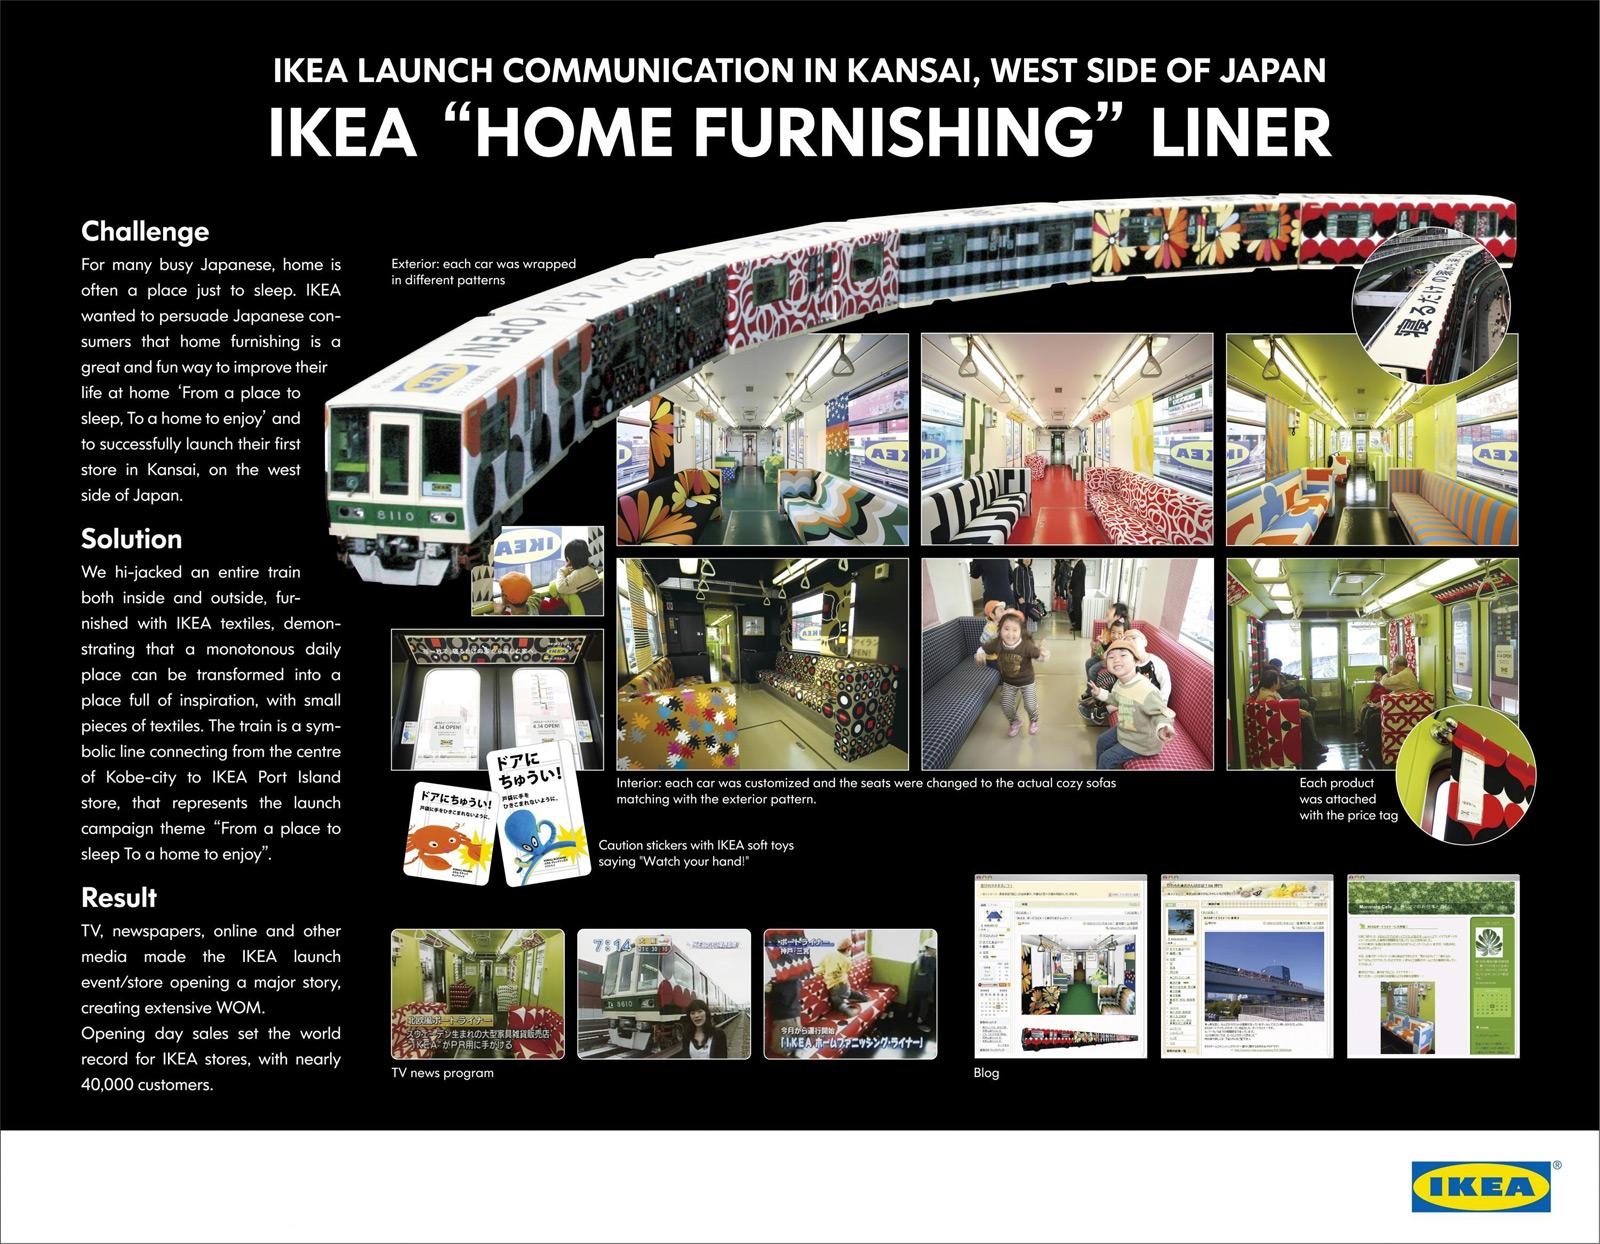 IKEA Outdoor Ad   Home furnishing liner. IKEA Outdoor Advert By ADK  Drill  Home furnishing liner   Ads of